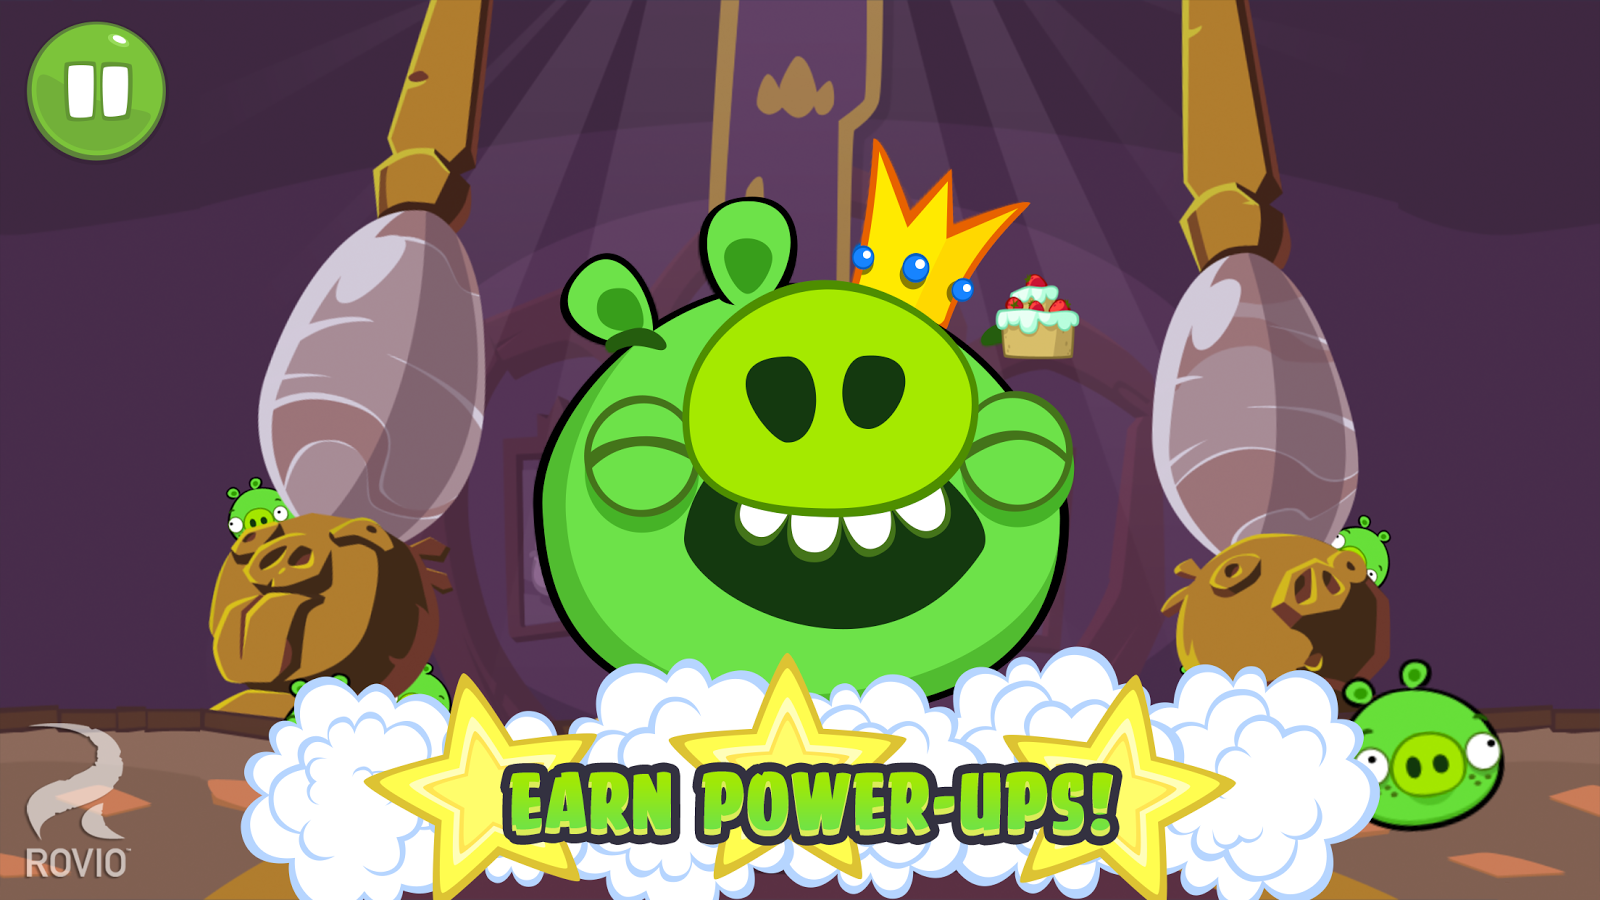 Bad piggies full version - download - 4shared